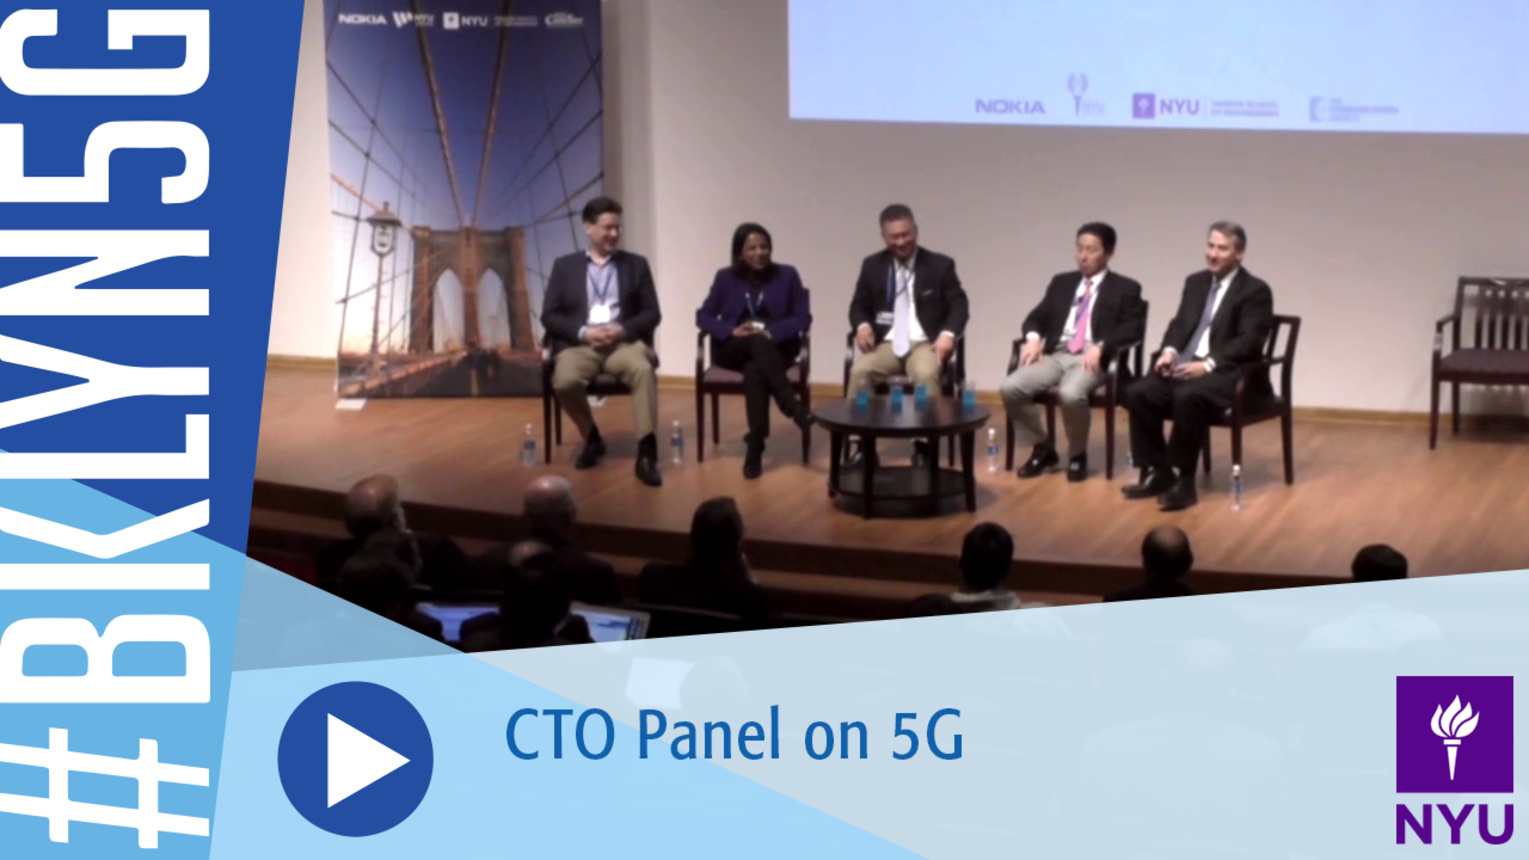 Brooklyn 5G 2016: CTO Panel on 5G